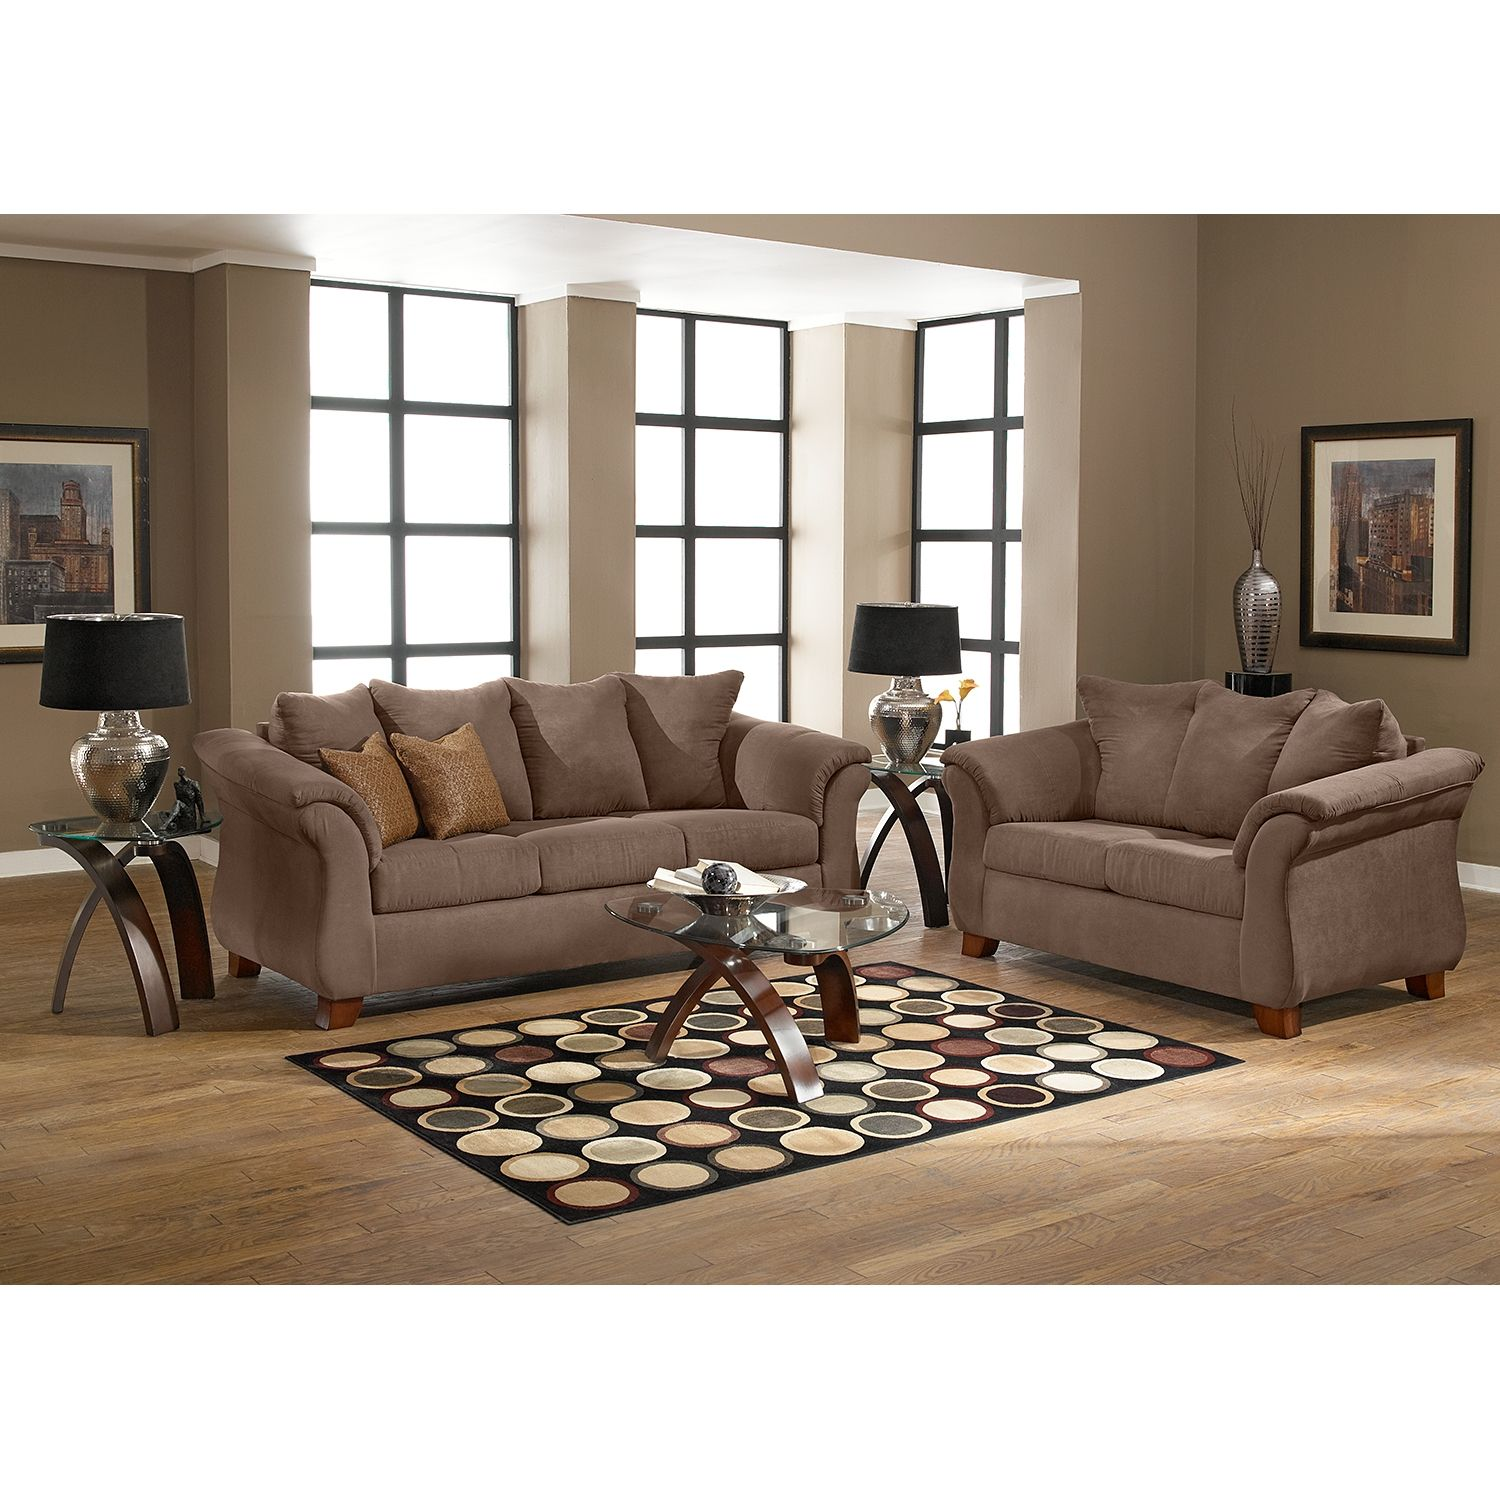 Cool Adrian Sofa Value City Furniture Sofa Loveseat Set Onthecornerstone Fun Painted Chair Ideas Images Onthecornerstoneorg